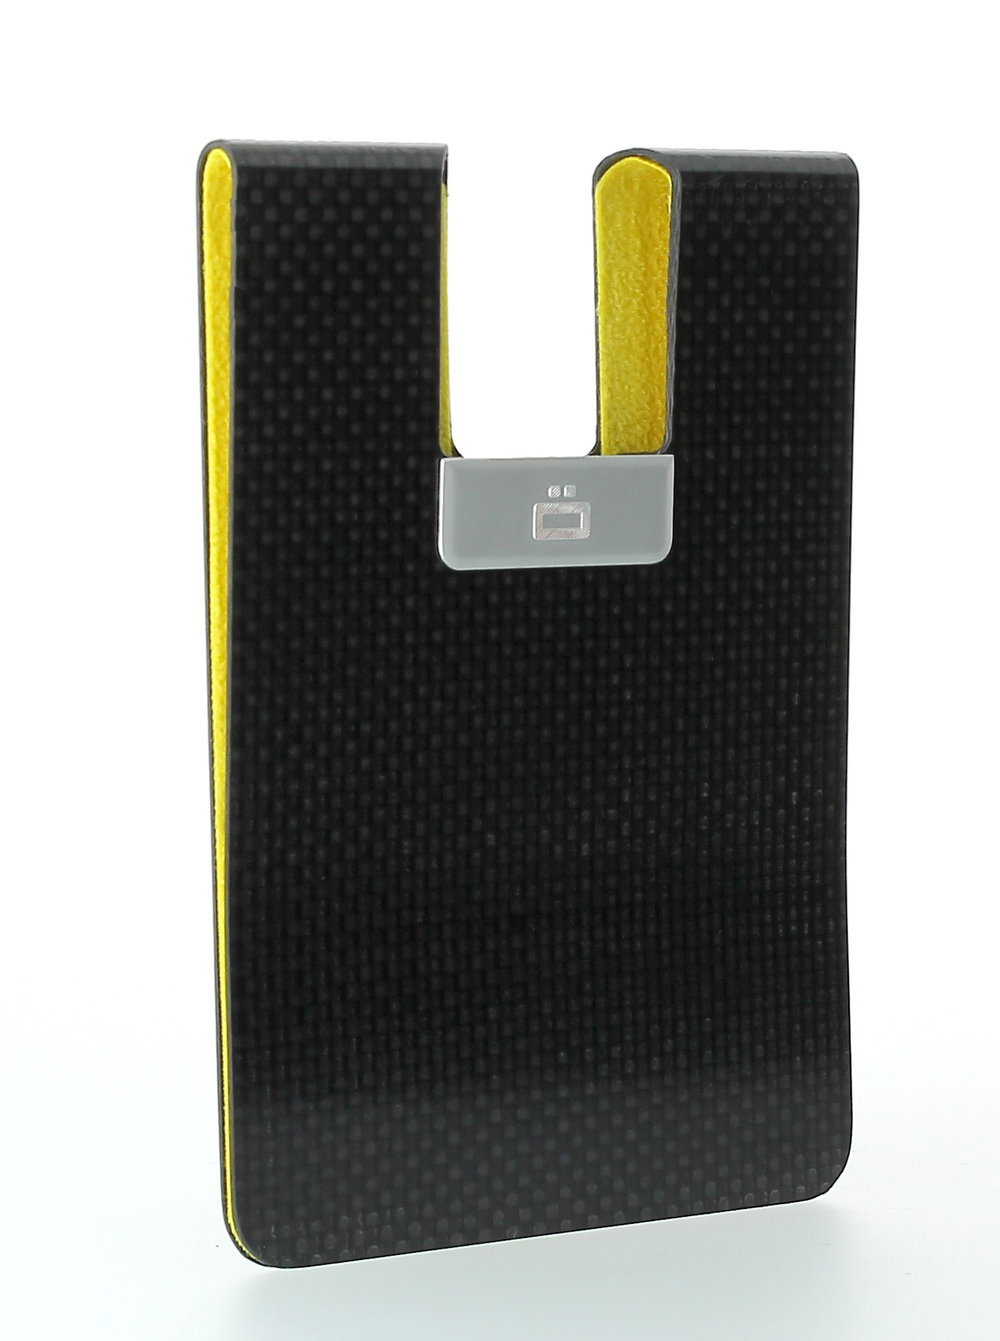 F1 Carbon Fiber Passport Clip